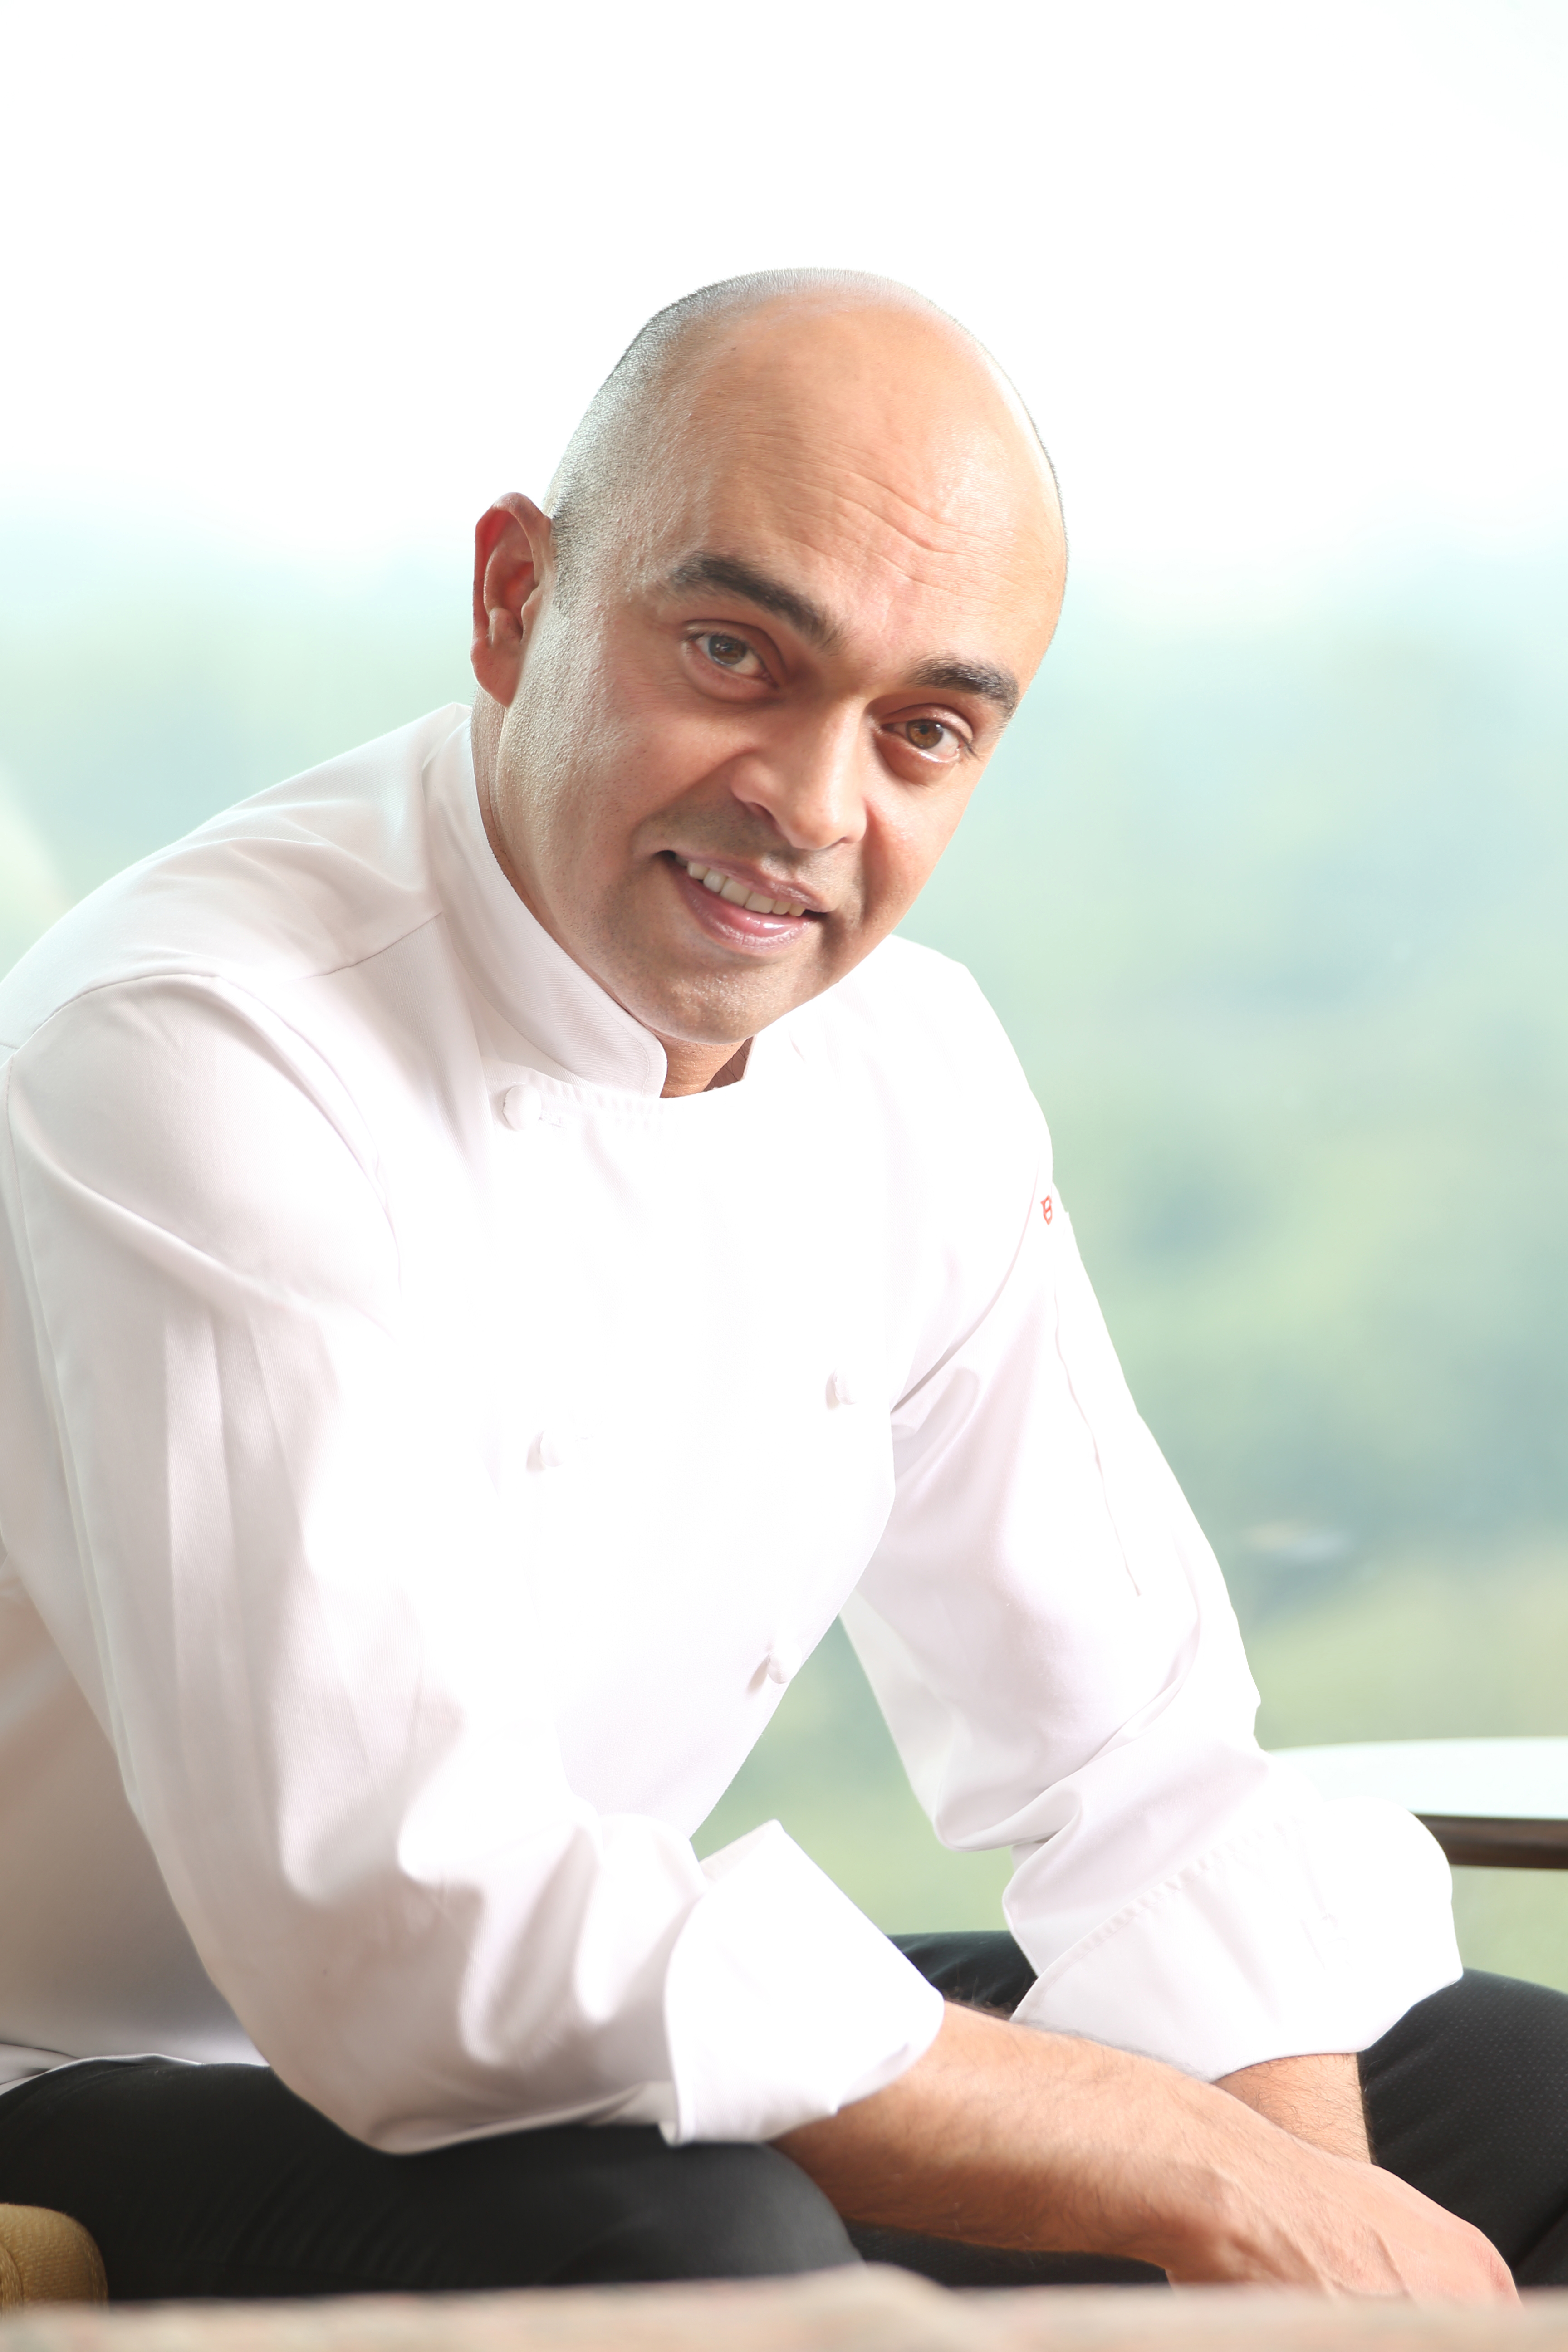 In 2002, when Prasad was just 29 years old, Tamarind got its first Michelin star, making Prasad the youngest Indian chef to receive a Michelin star